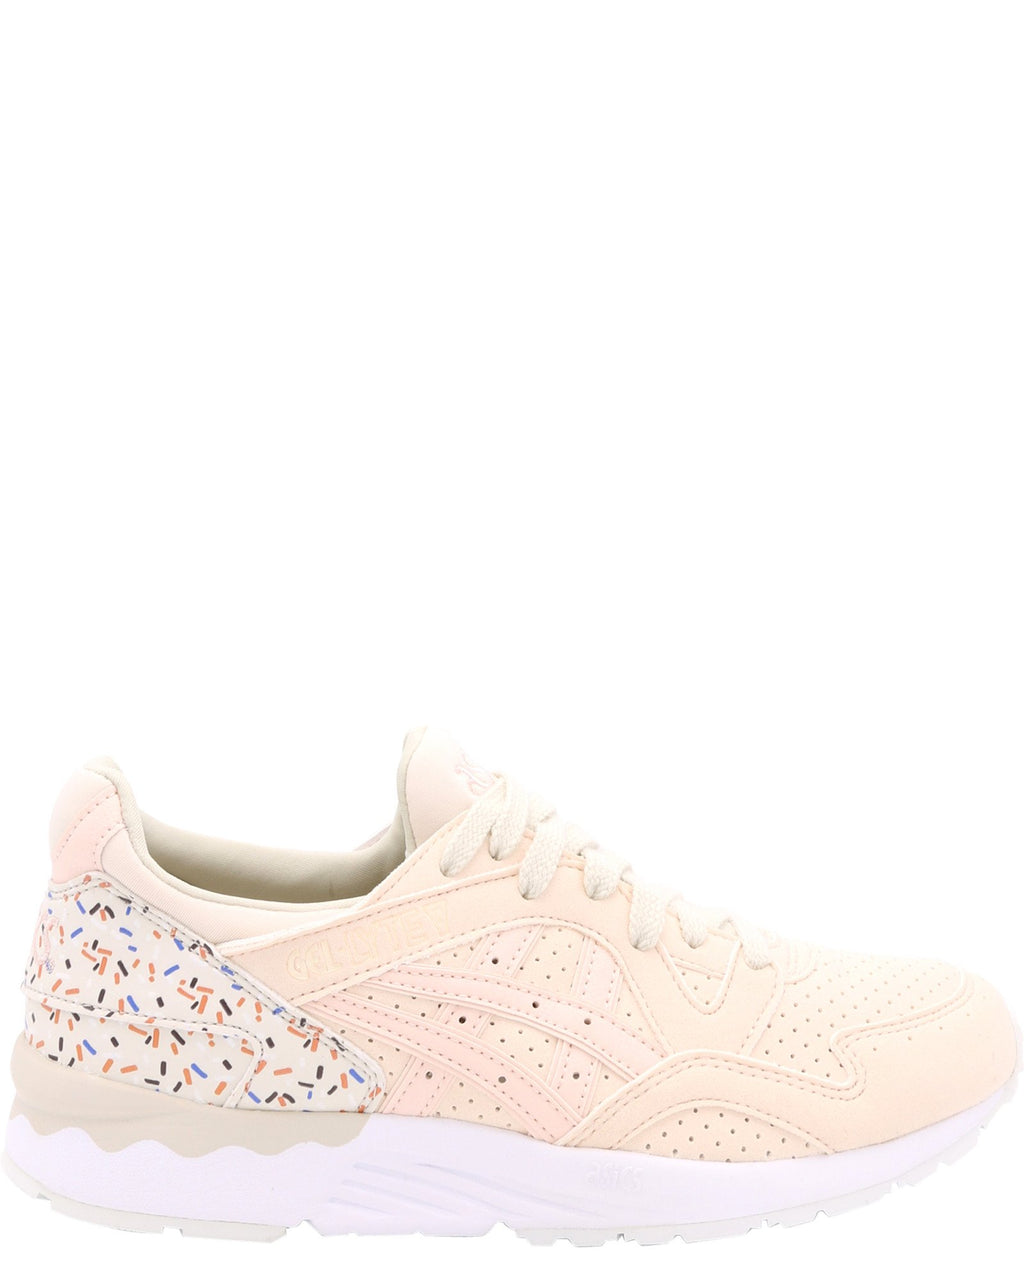 Asics - Girl's Gel-Lyte V Sneakers (Grade School) - V.I.M. - 1